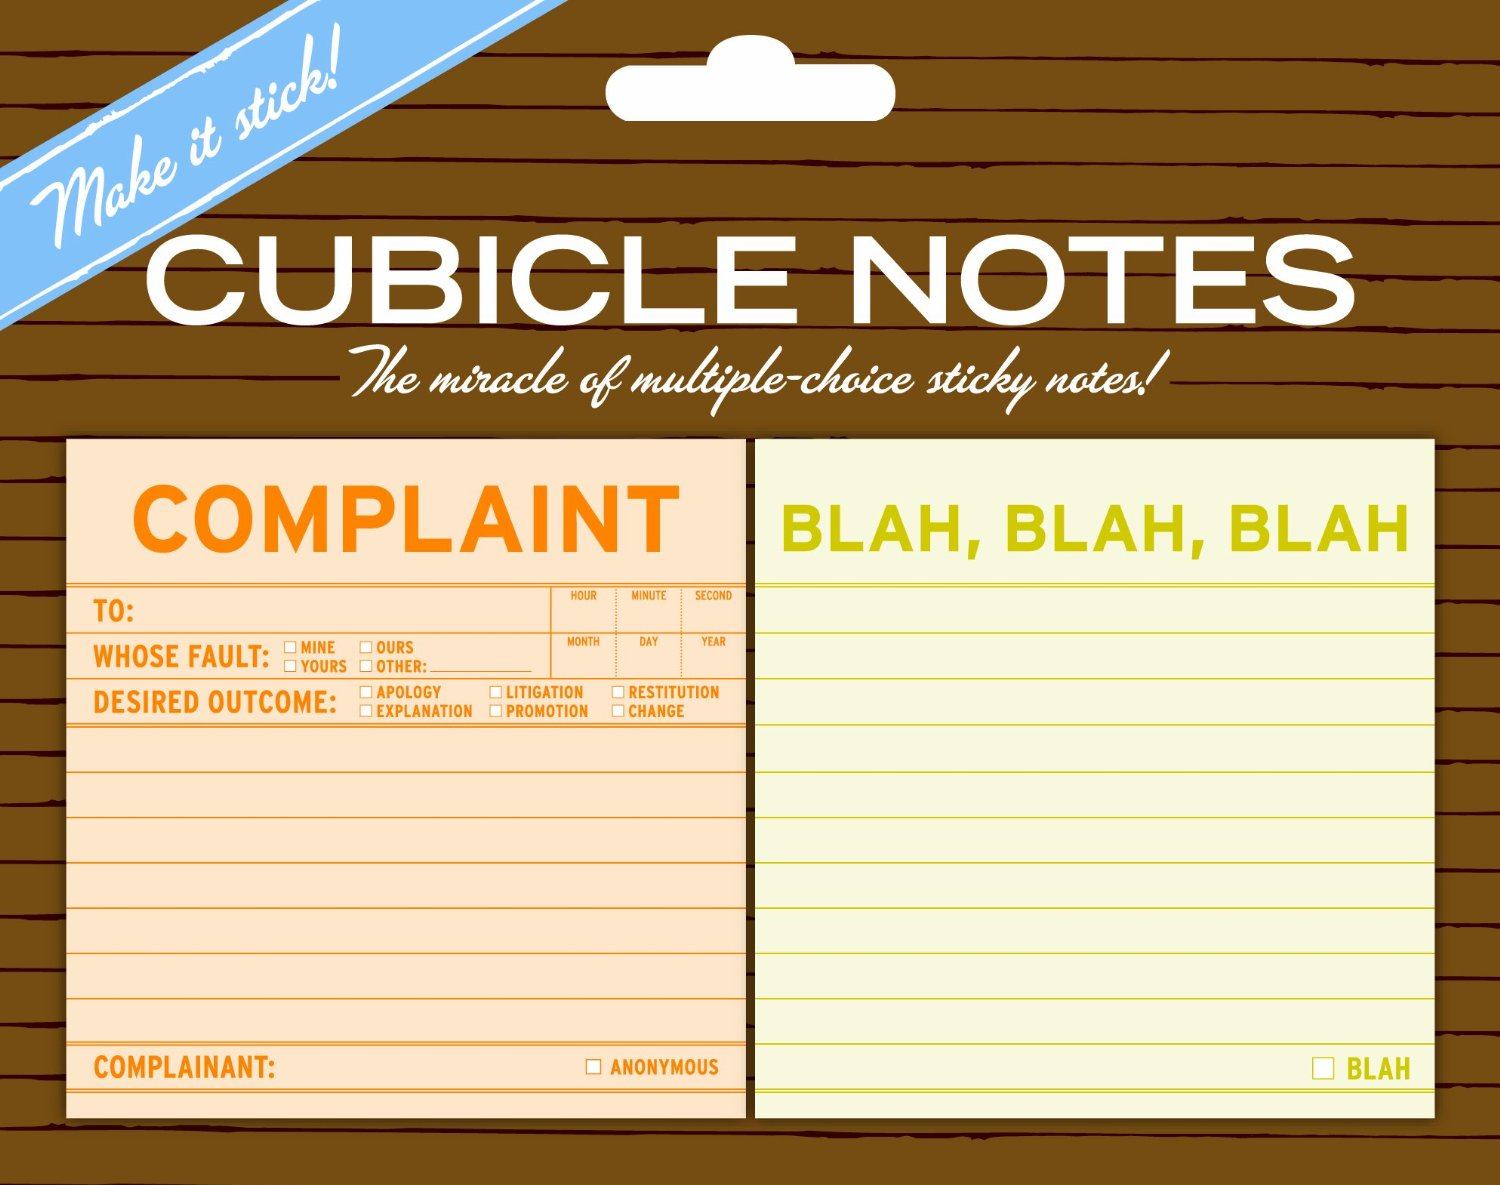 Knock Knock Sticky Cubicle Notes Complaint and Blah